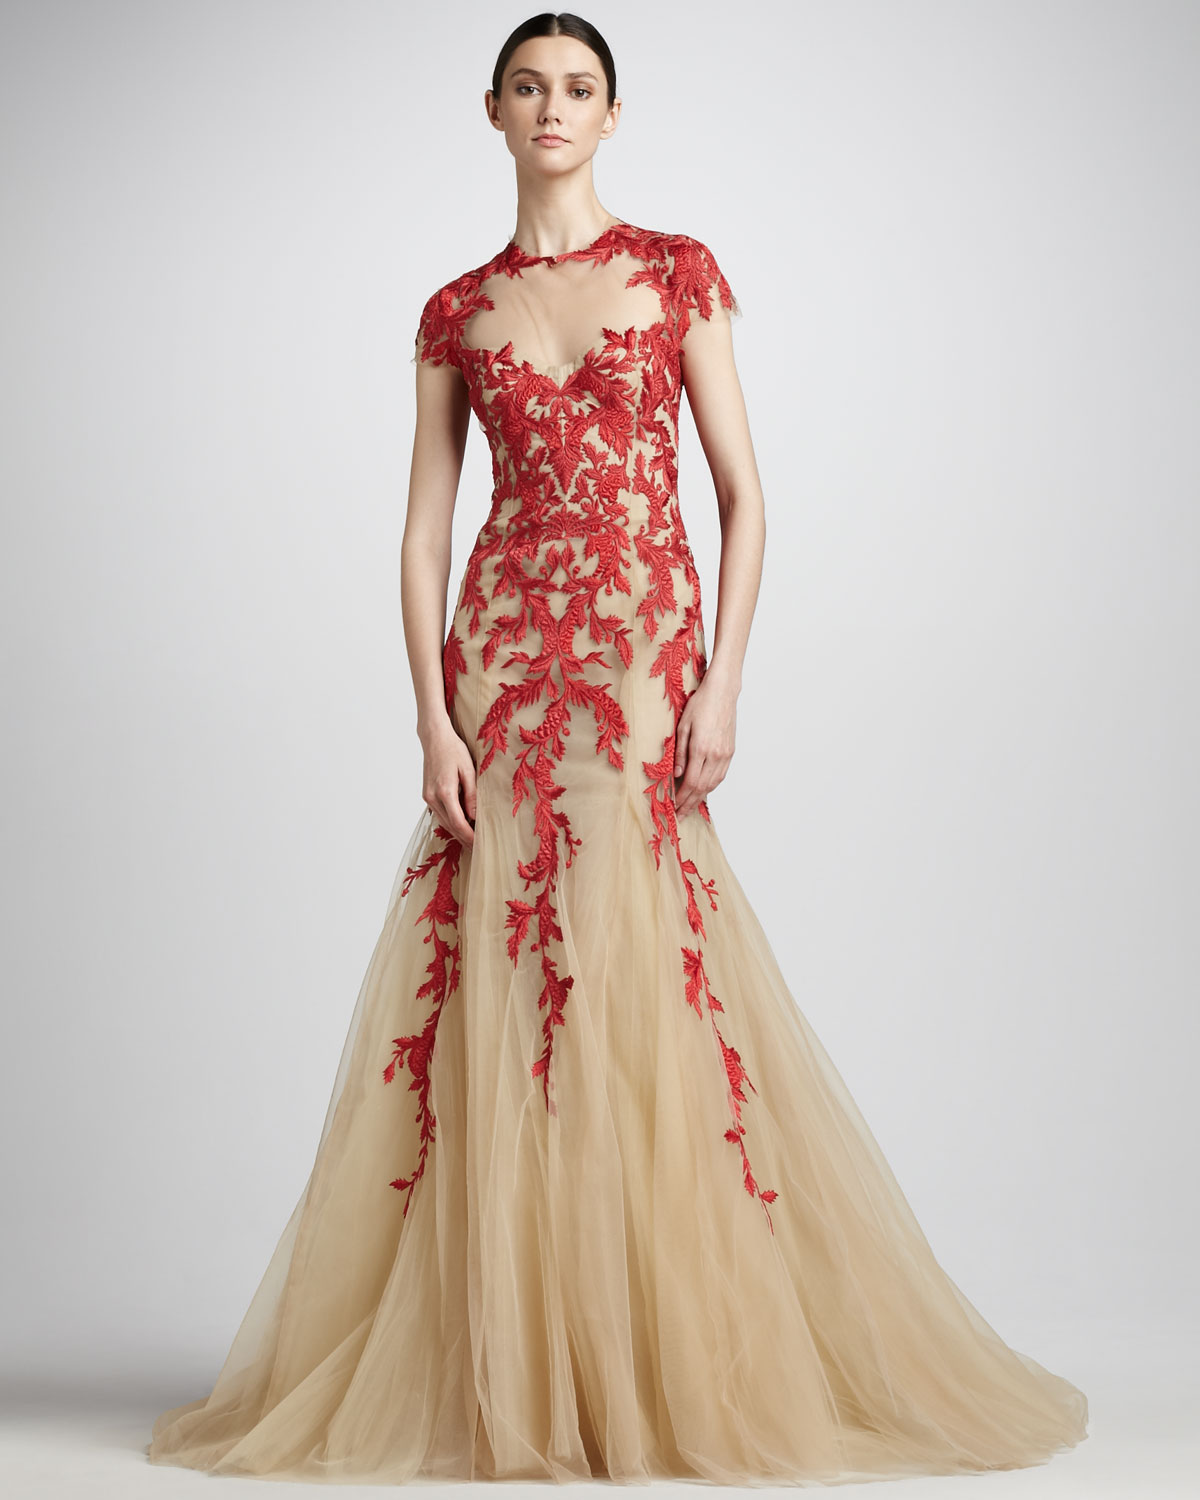 Non Traditional Red Wedding Dresses: Monique Lhuillier Embroidered Tulle Ballgown In Natural